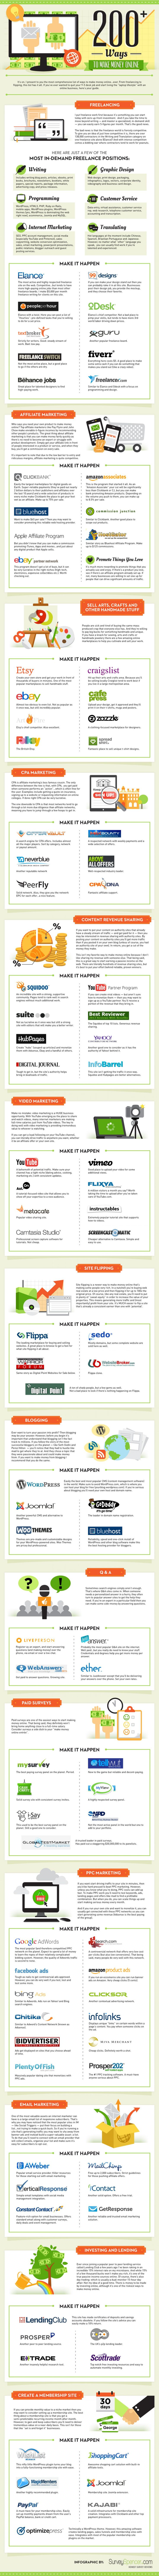 200+ Real and Legit Ways to Make Money Online Easily   [Infographic]